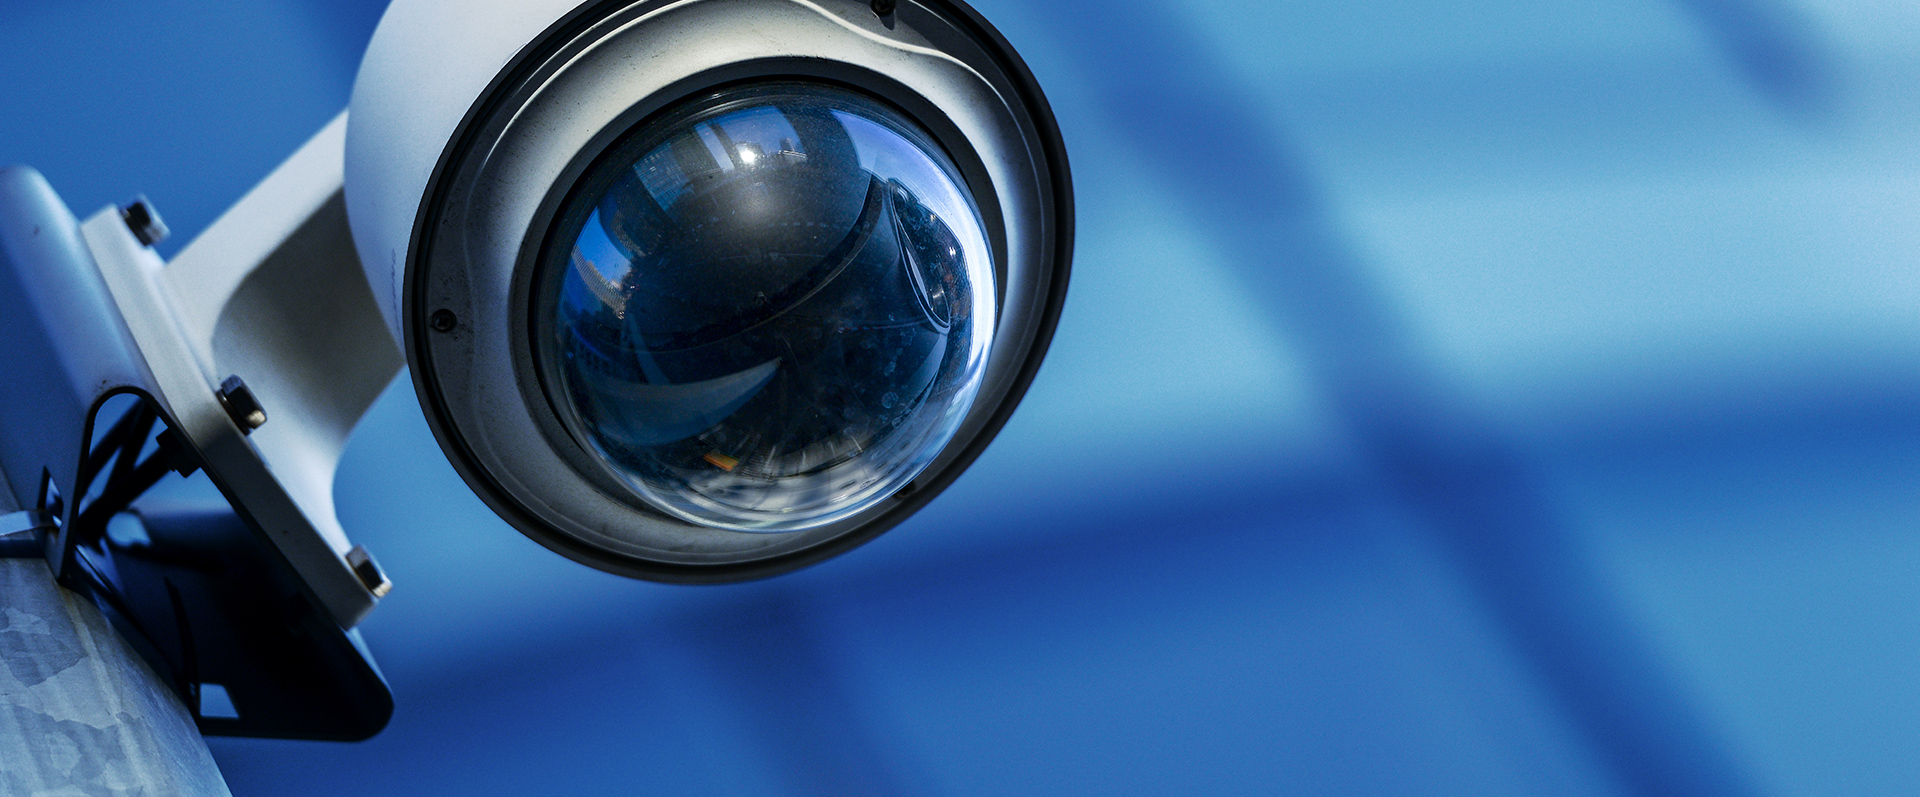 Home Alarm Monitoring Services Uk